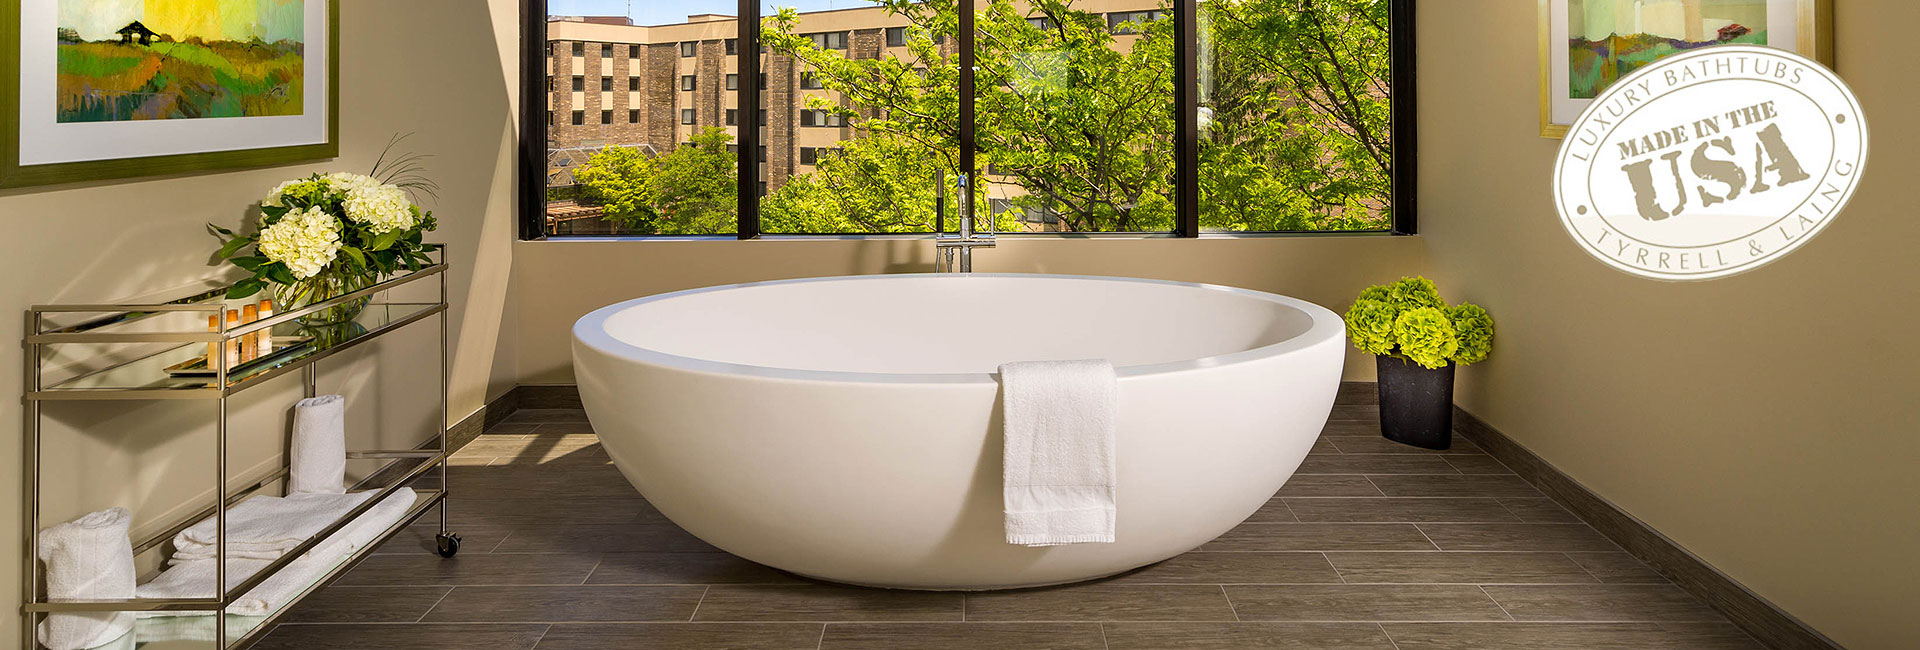 Large Luxury Bathtubs - Bathtub Ideas